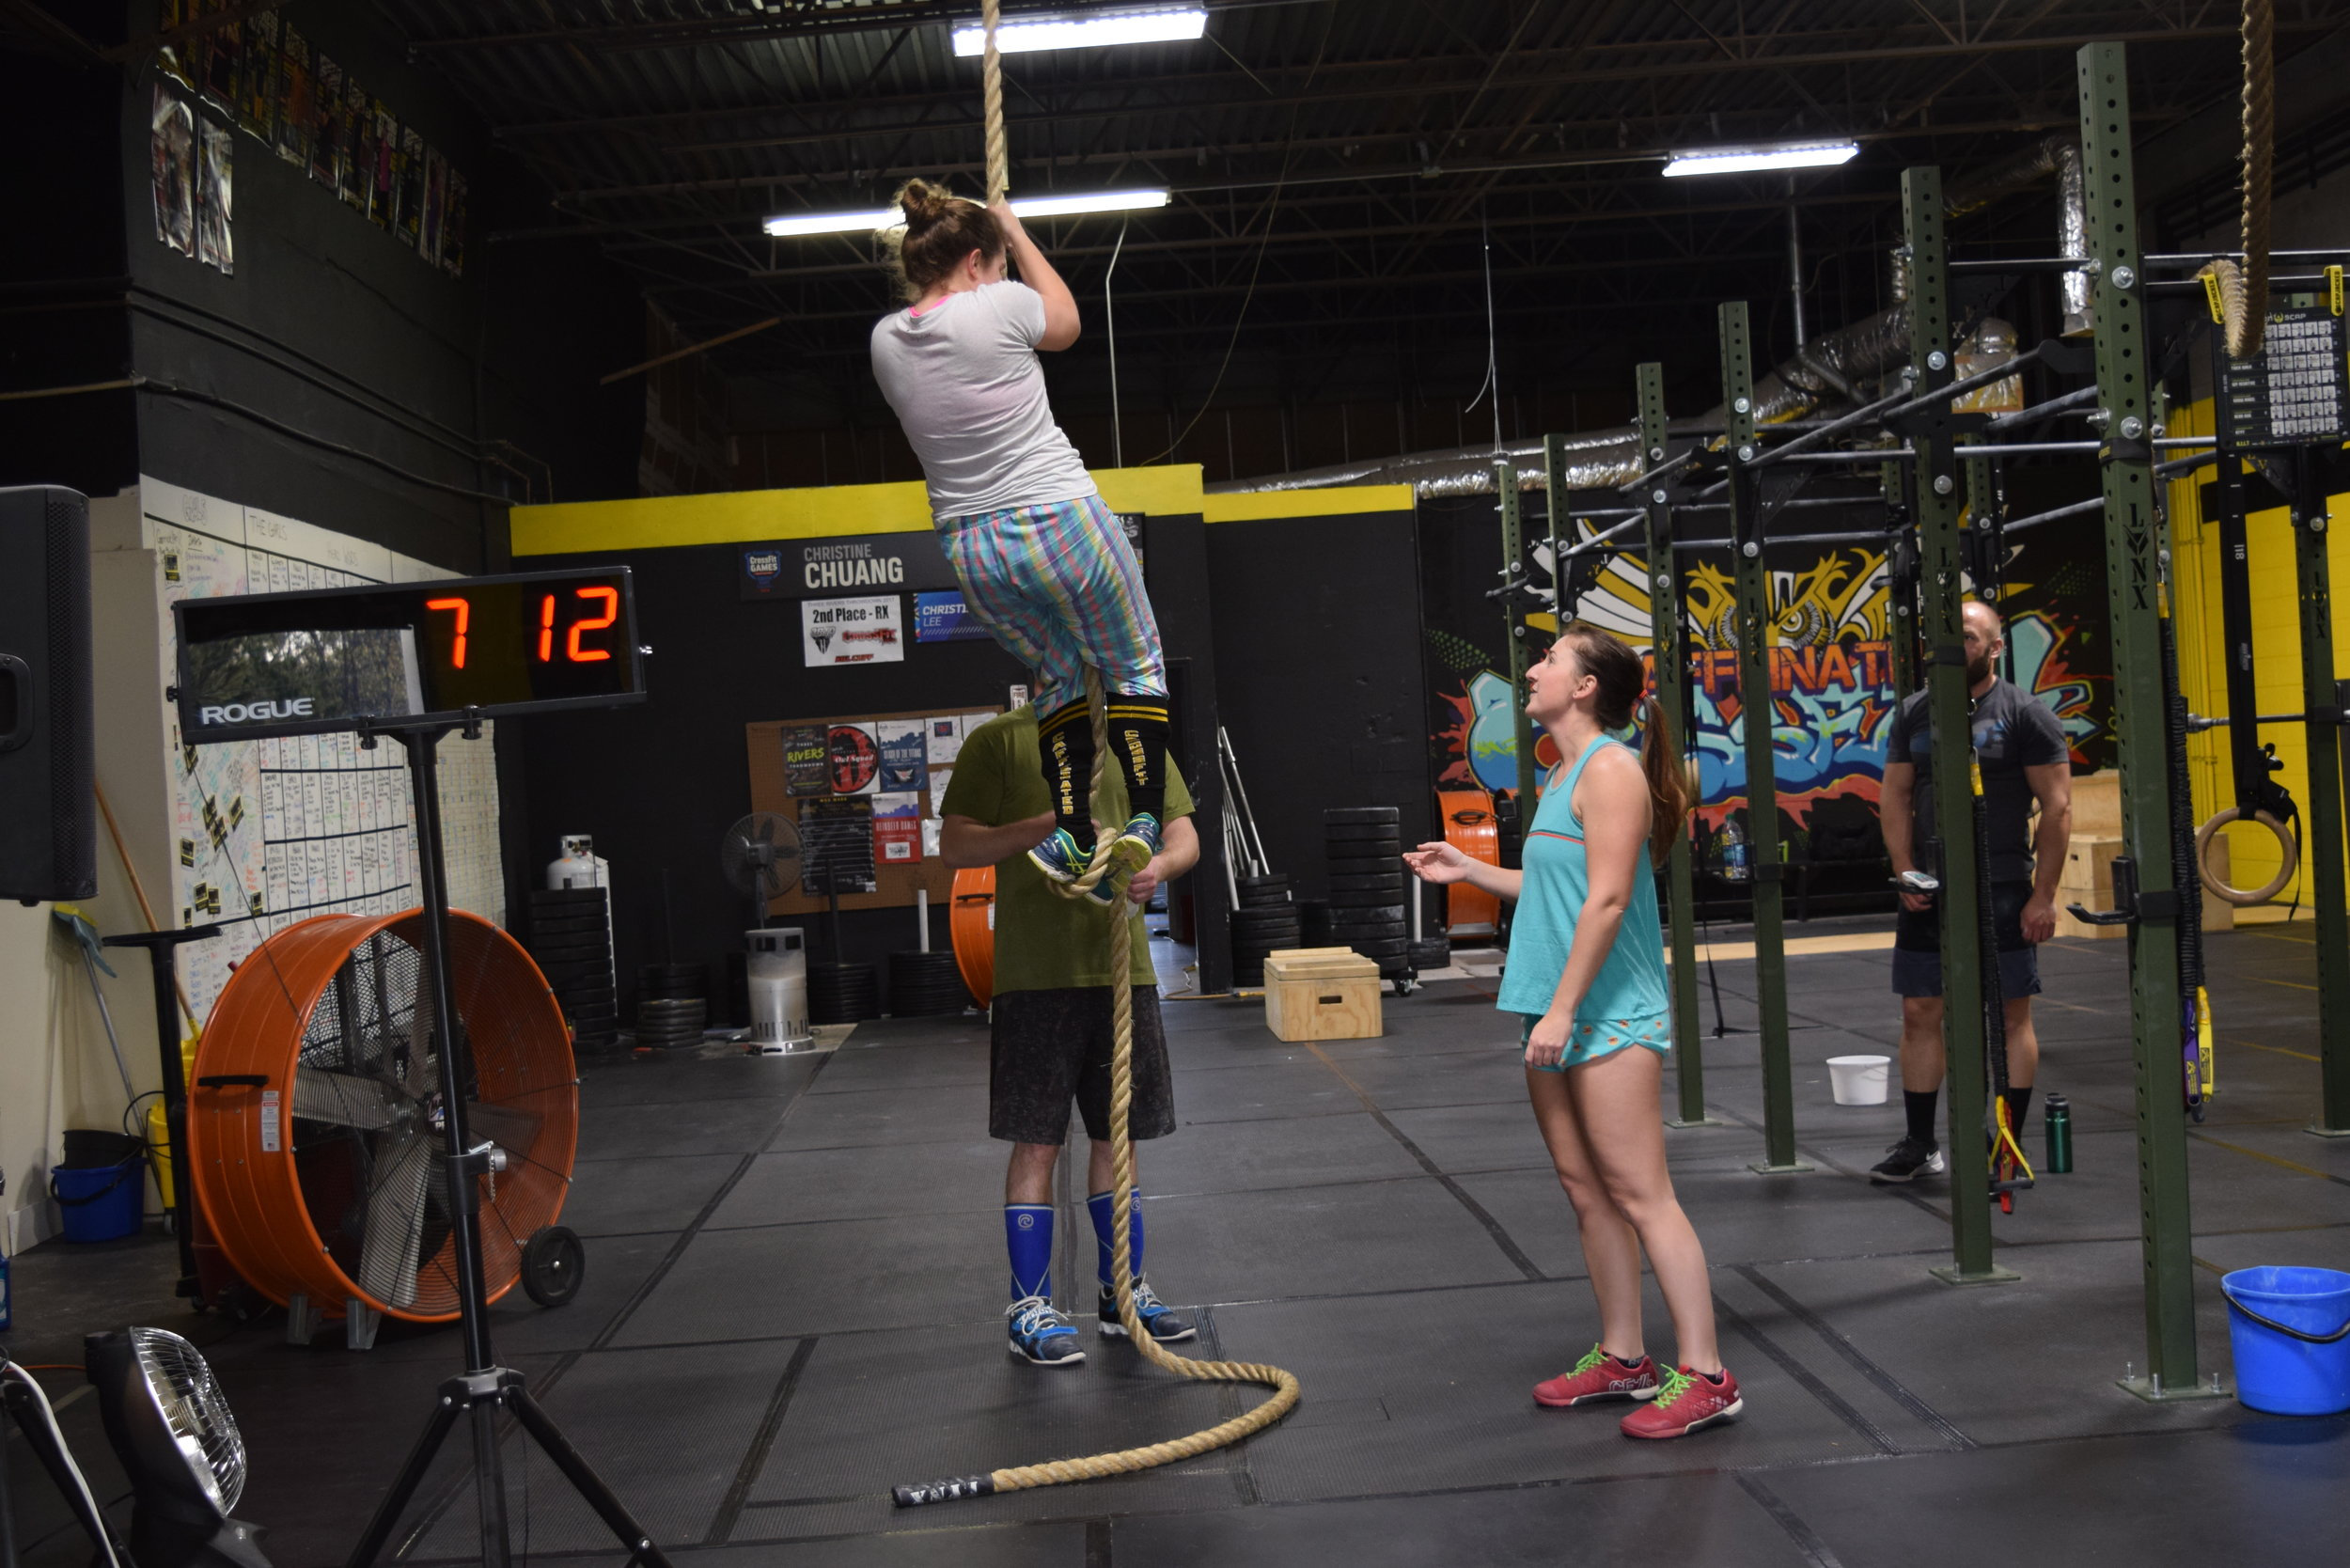 Leland's first rope climb!